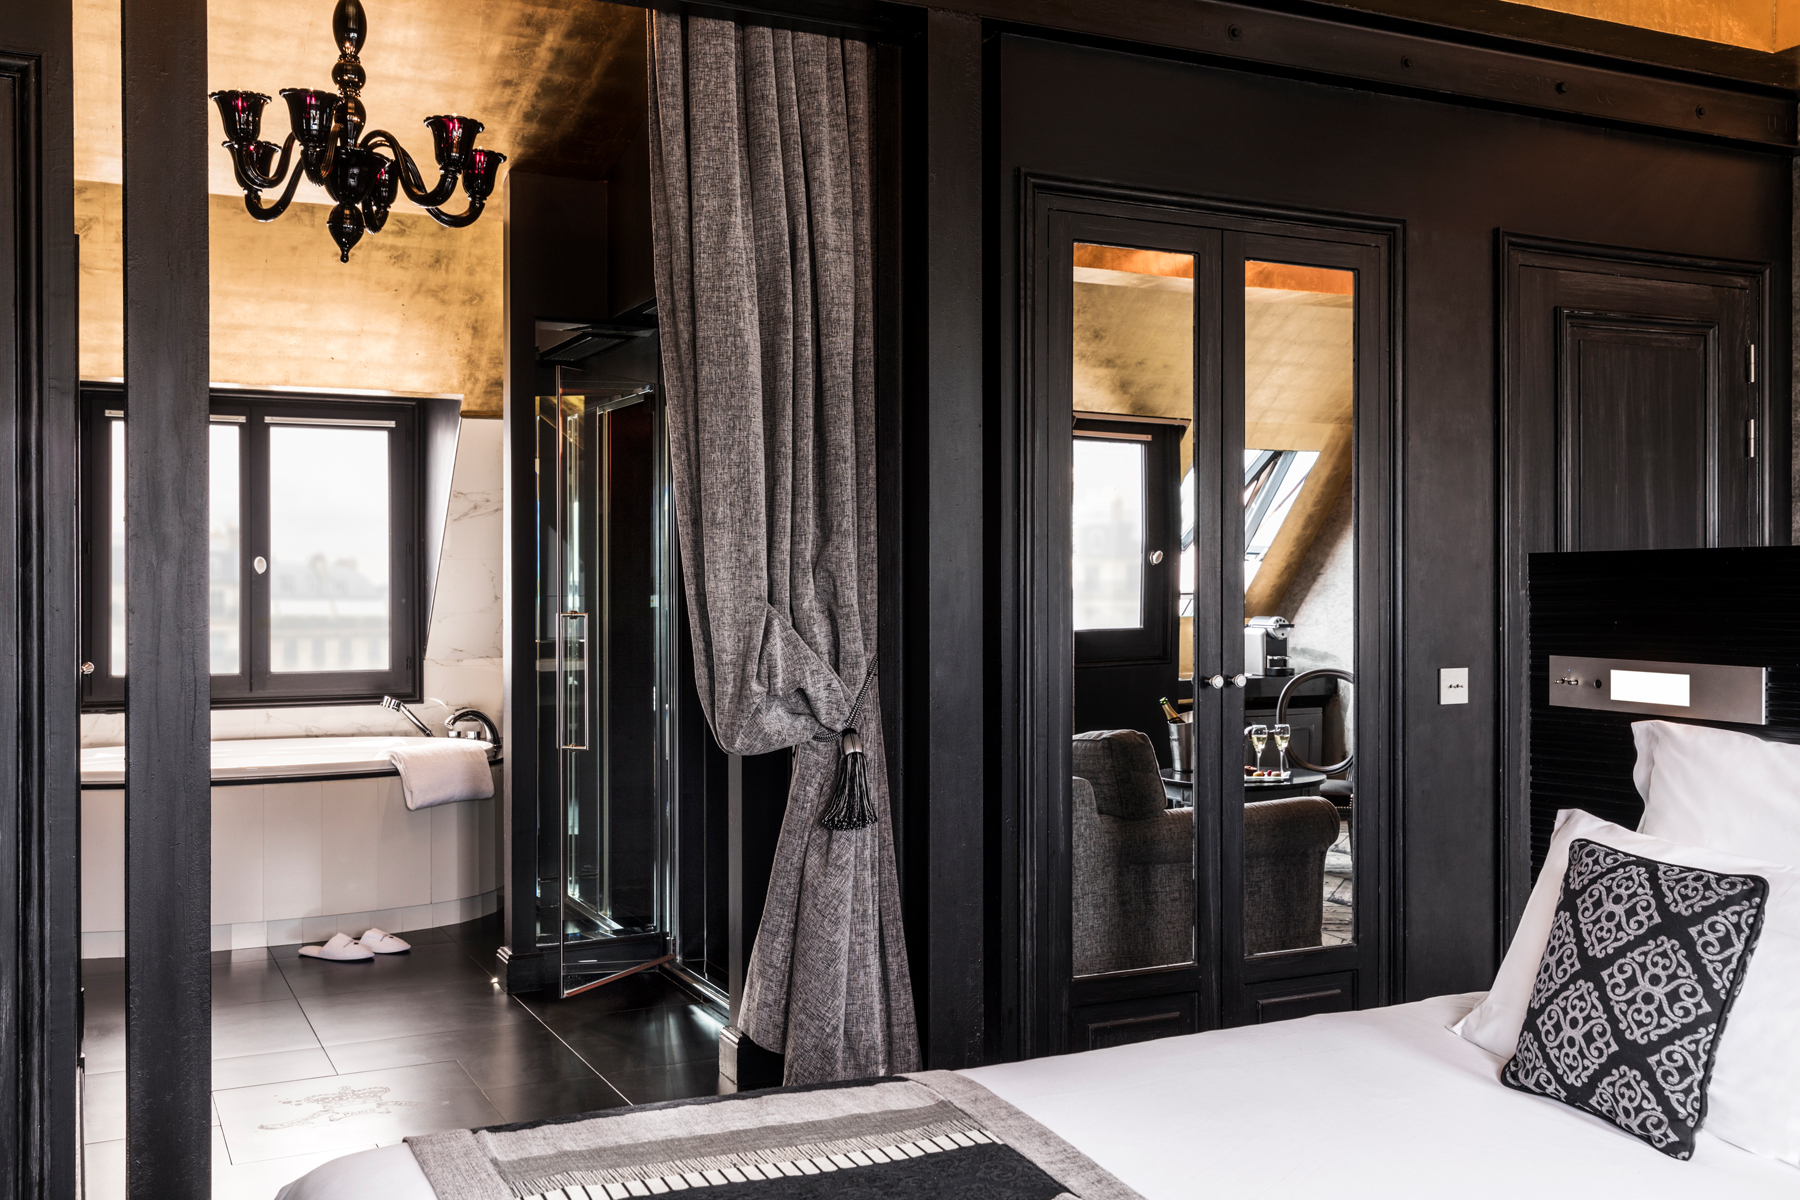 Maison Albar Hotels Le Champs-Elysées Suite with private jacuzzi